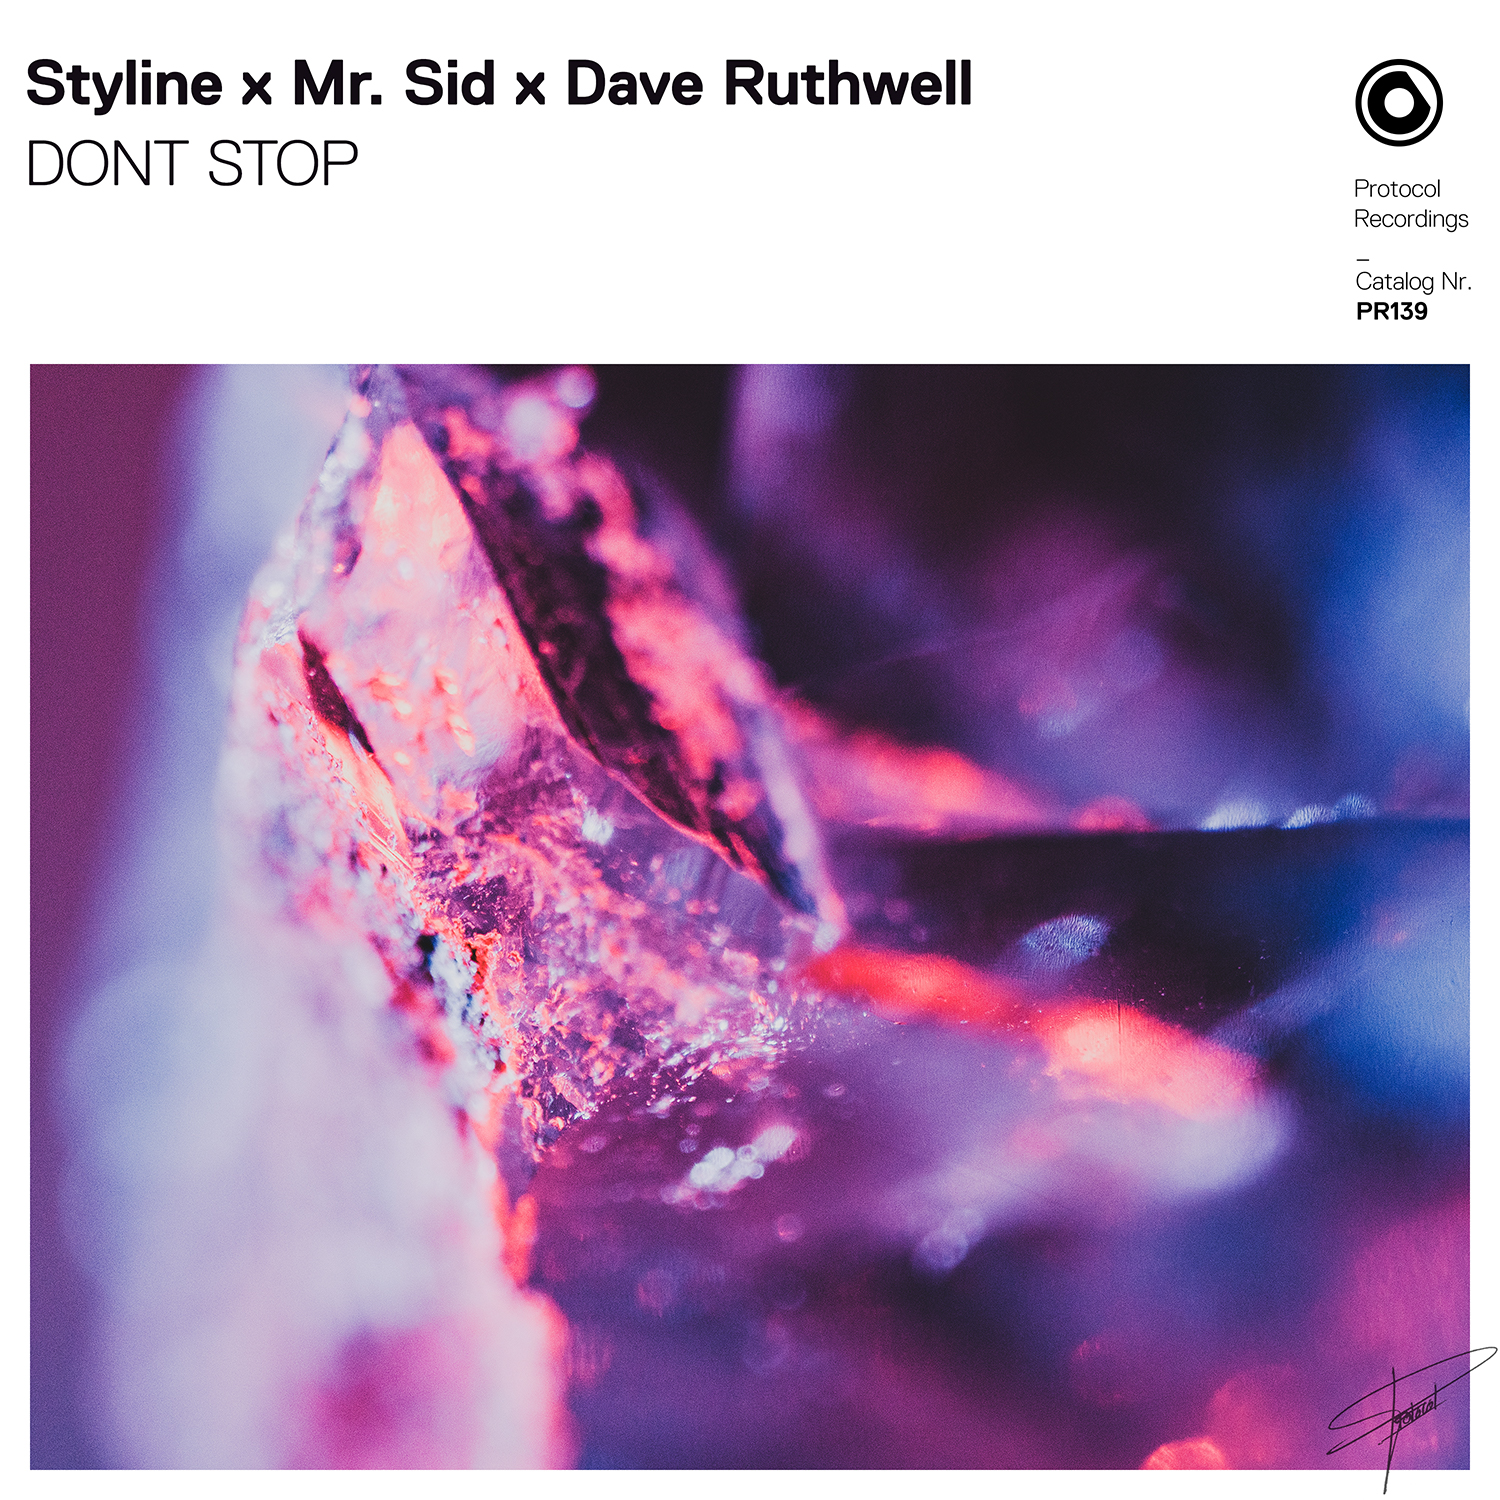 Styline X Mr. Sid X Dave Ruthwell - DONT STOP.jpg